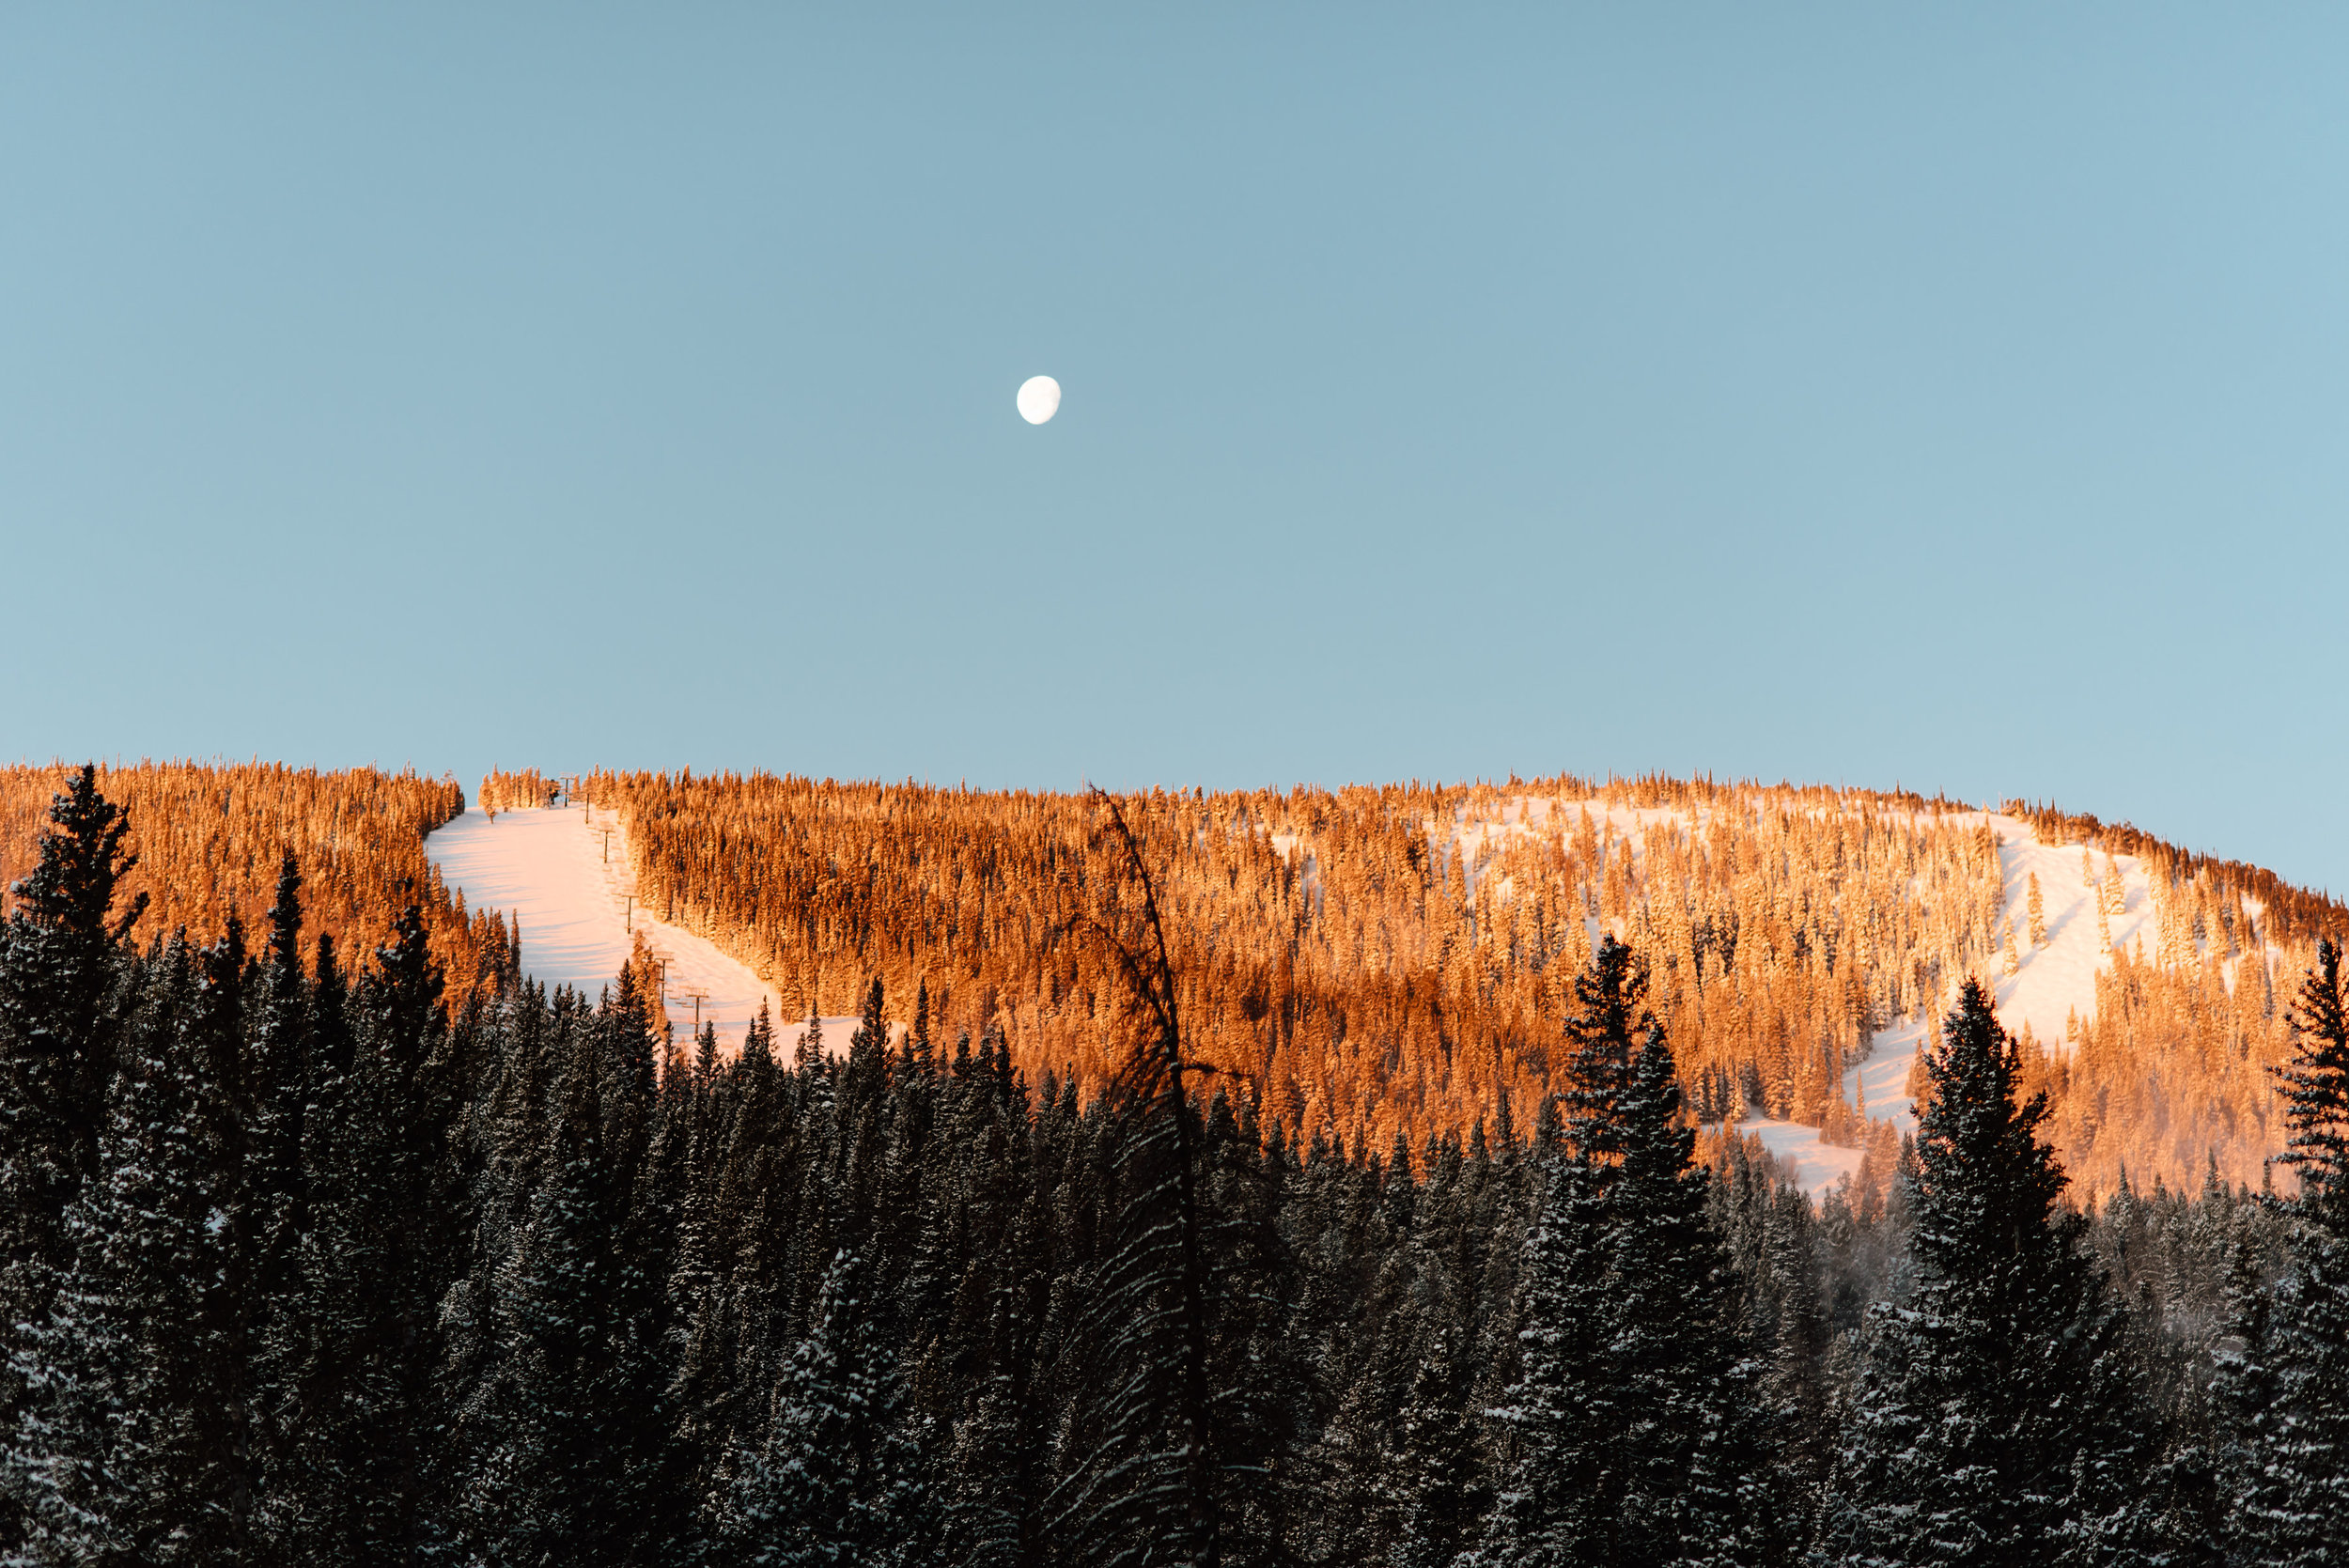 The way the sun it kidding this snowcapped mountain ski area is so breathtaking. I love when the moon is still out in the early morning when you're in nature. What a perfect spot for an engagement photoshoot!| Adventurous engagement photos by Colorado mountain wedding photographer, Maddie Mae.